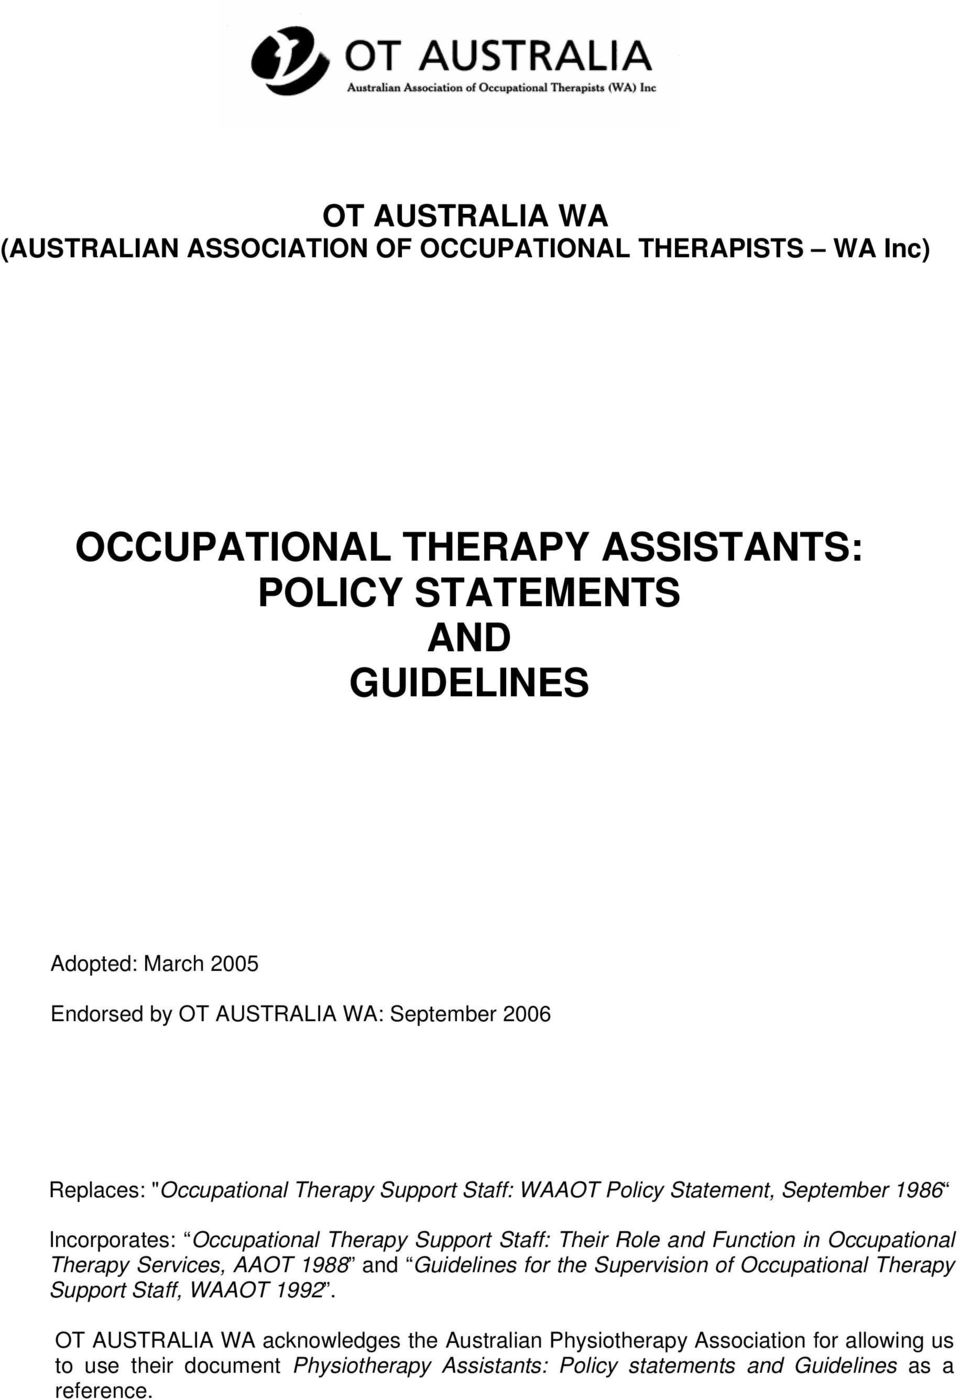 Staff: Their Role and Function in Occupational Therapy Services, AAOT 1988 and Guidelines for the Supervision of Occupational Therapy Support Staff, WAAOT 1992.